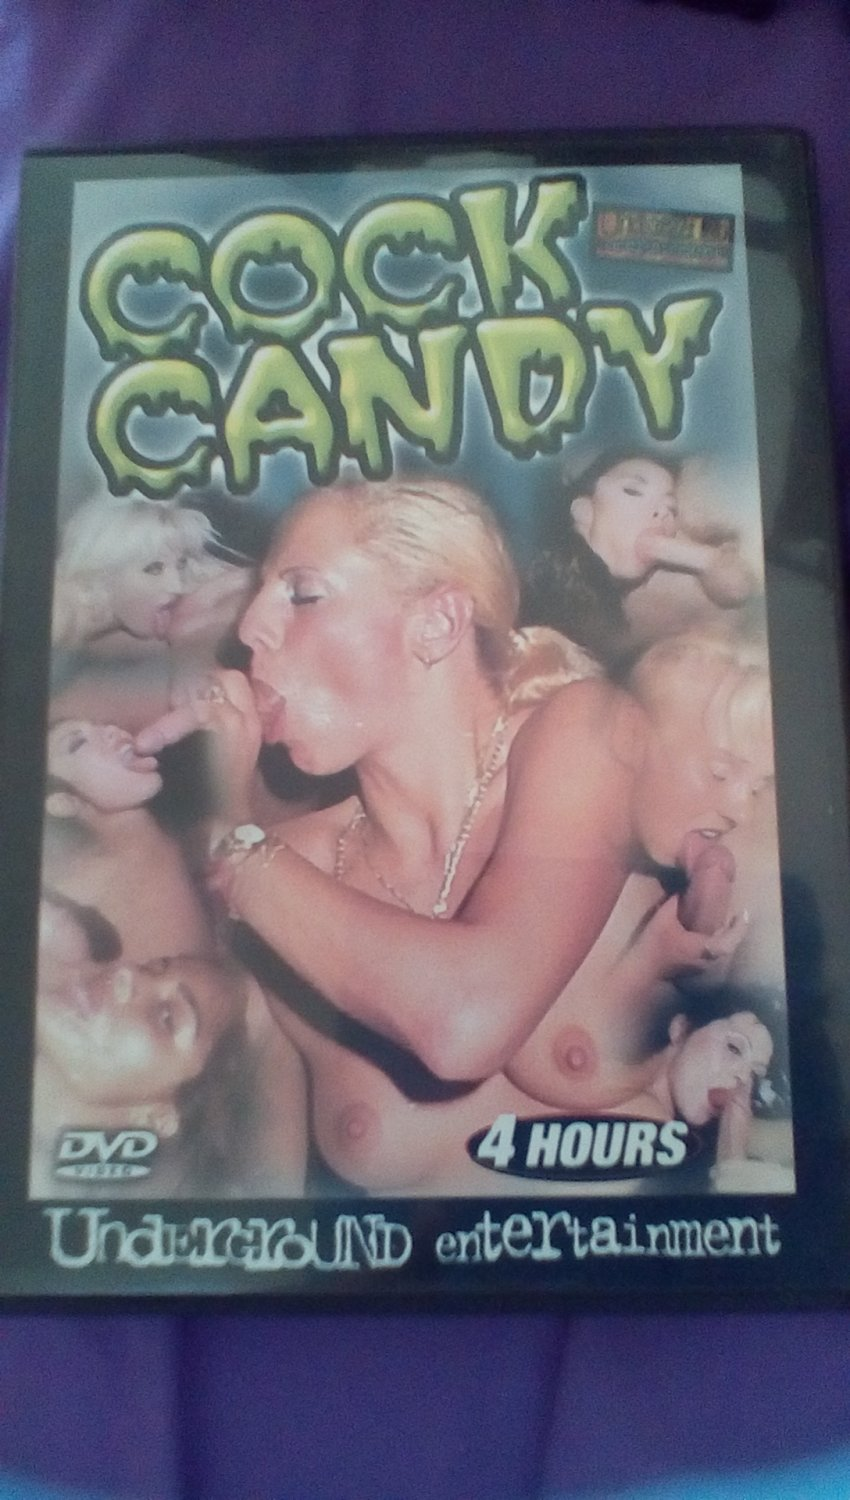 Cock candy